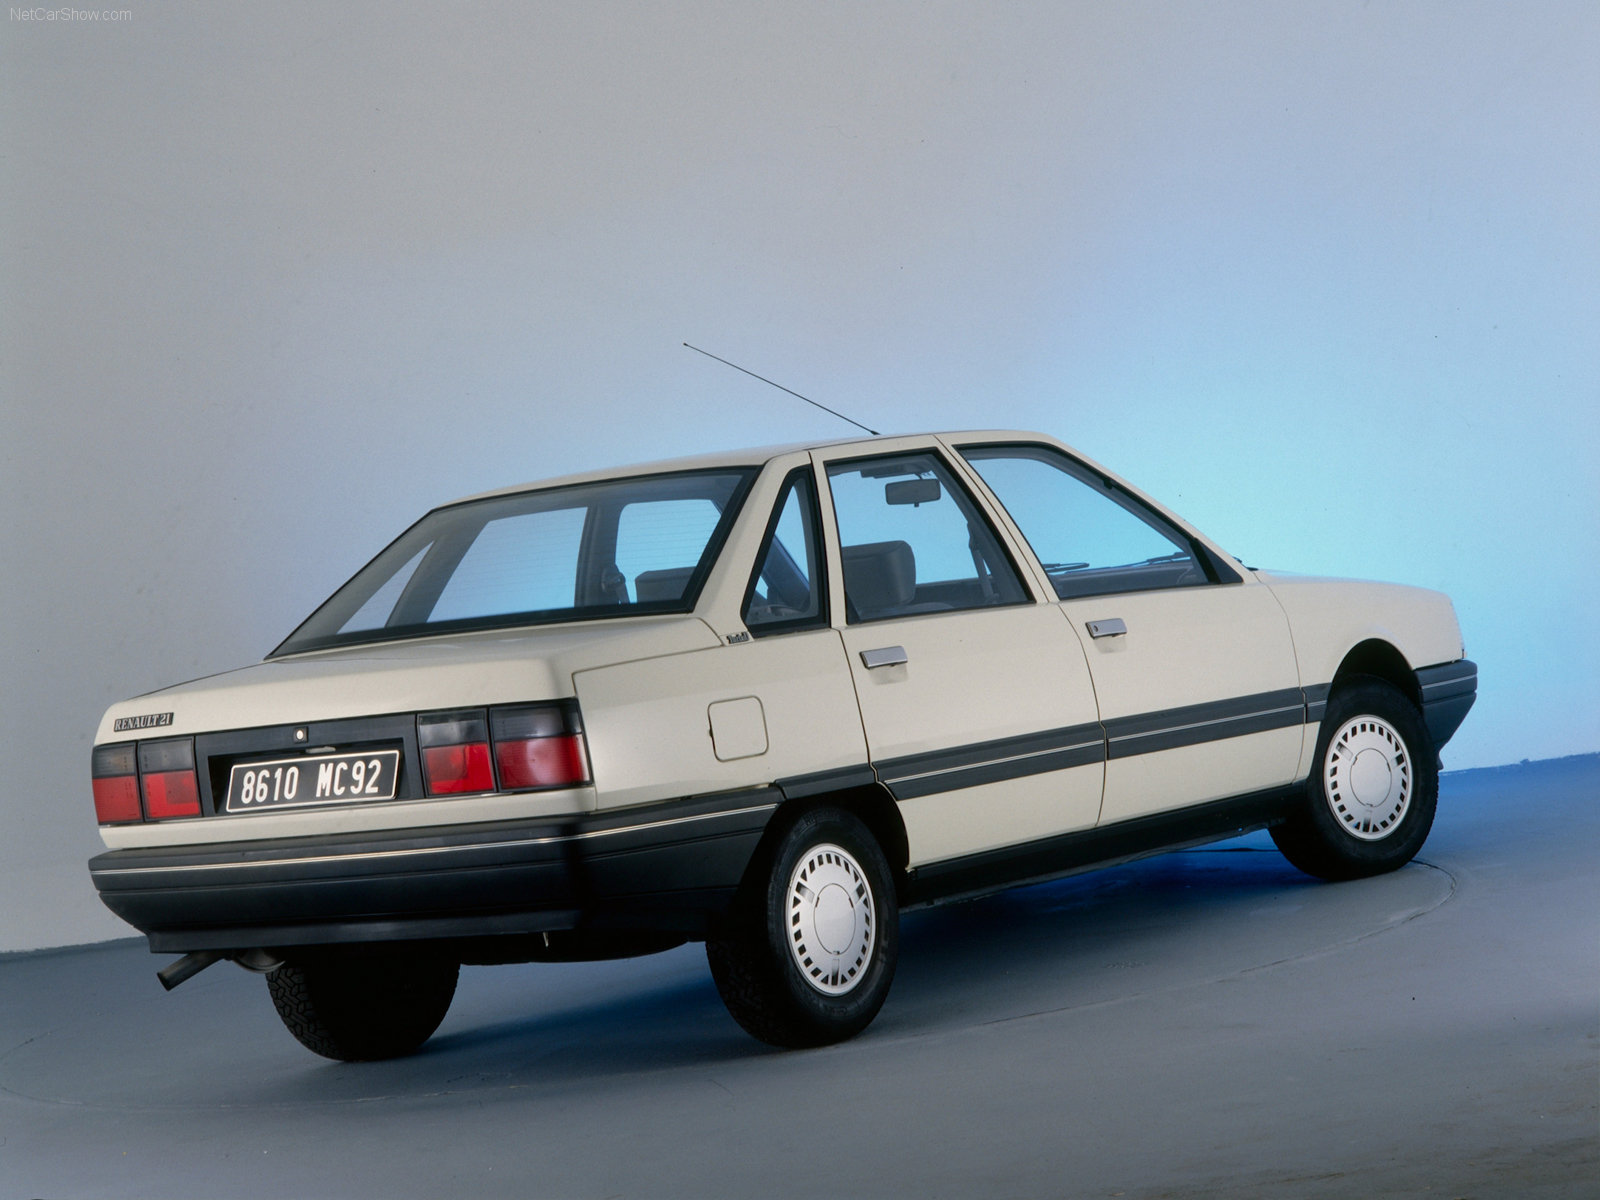 blanche Renault-21 Turbo D 1986 1600x1200 wallpaper 02